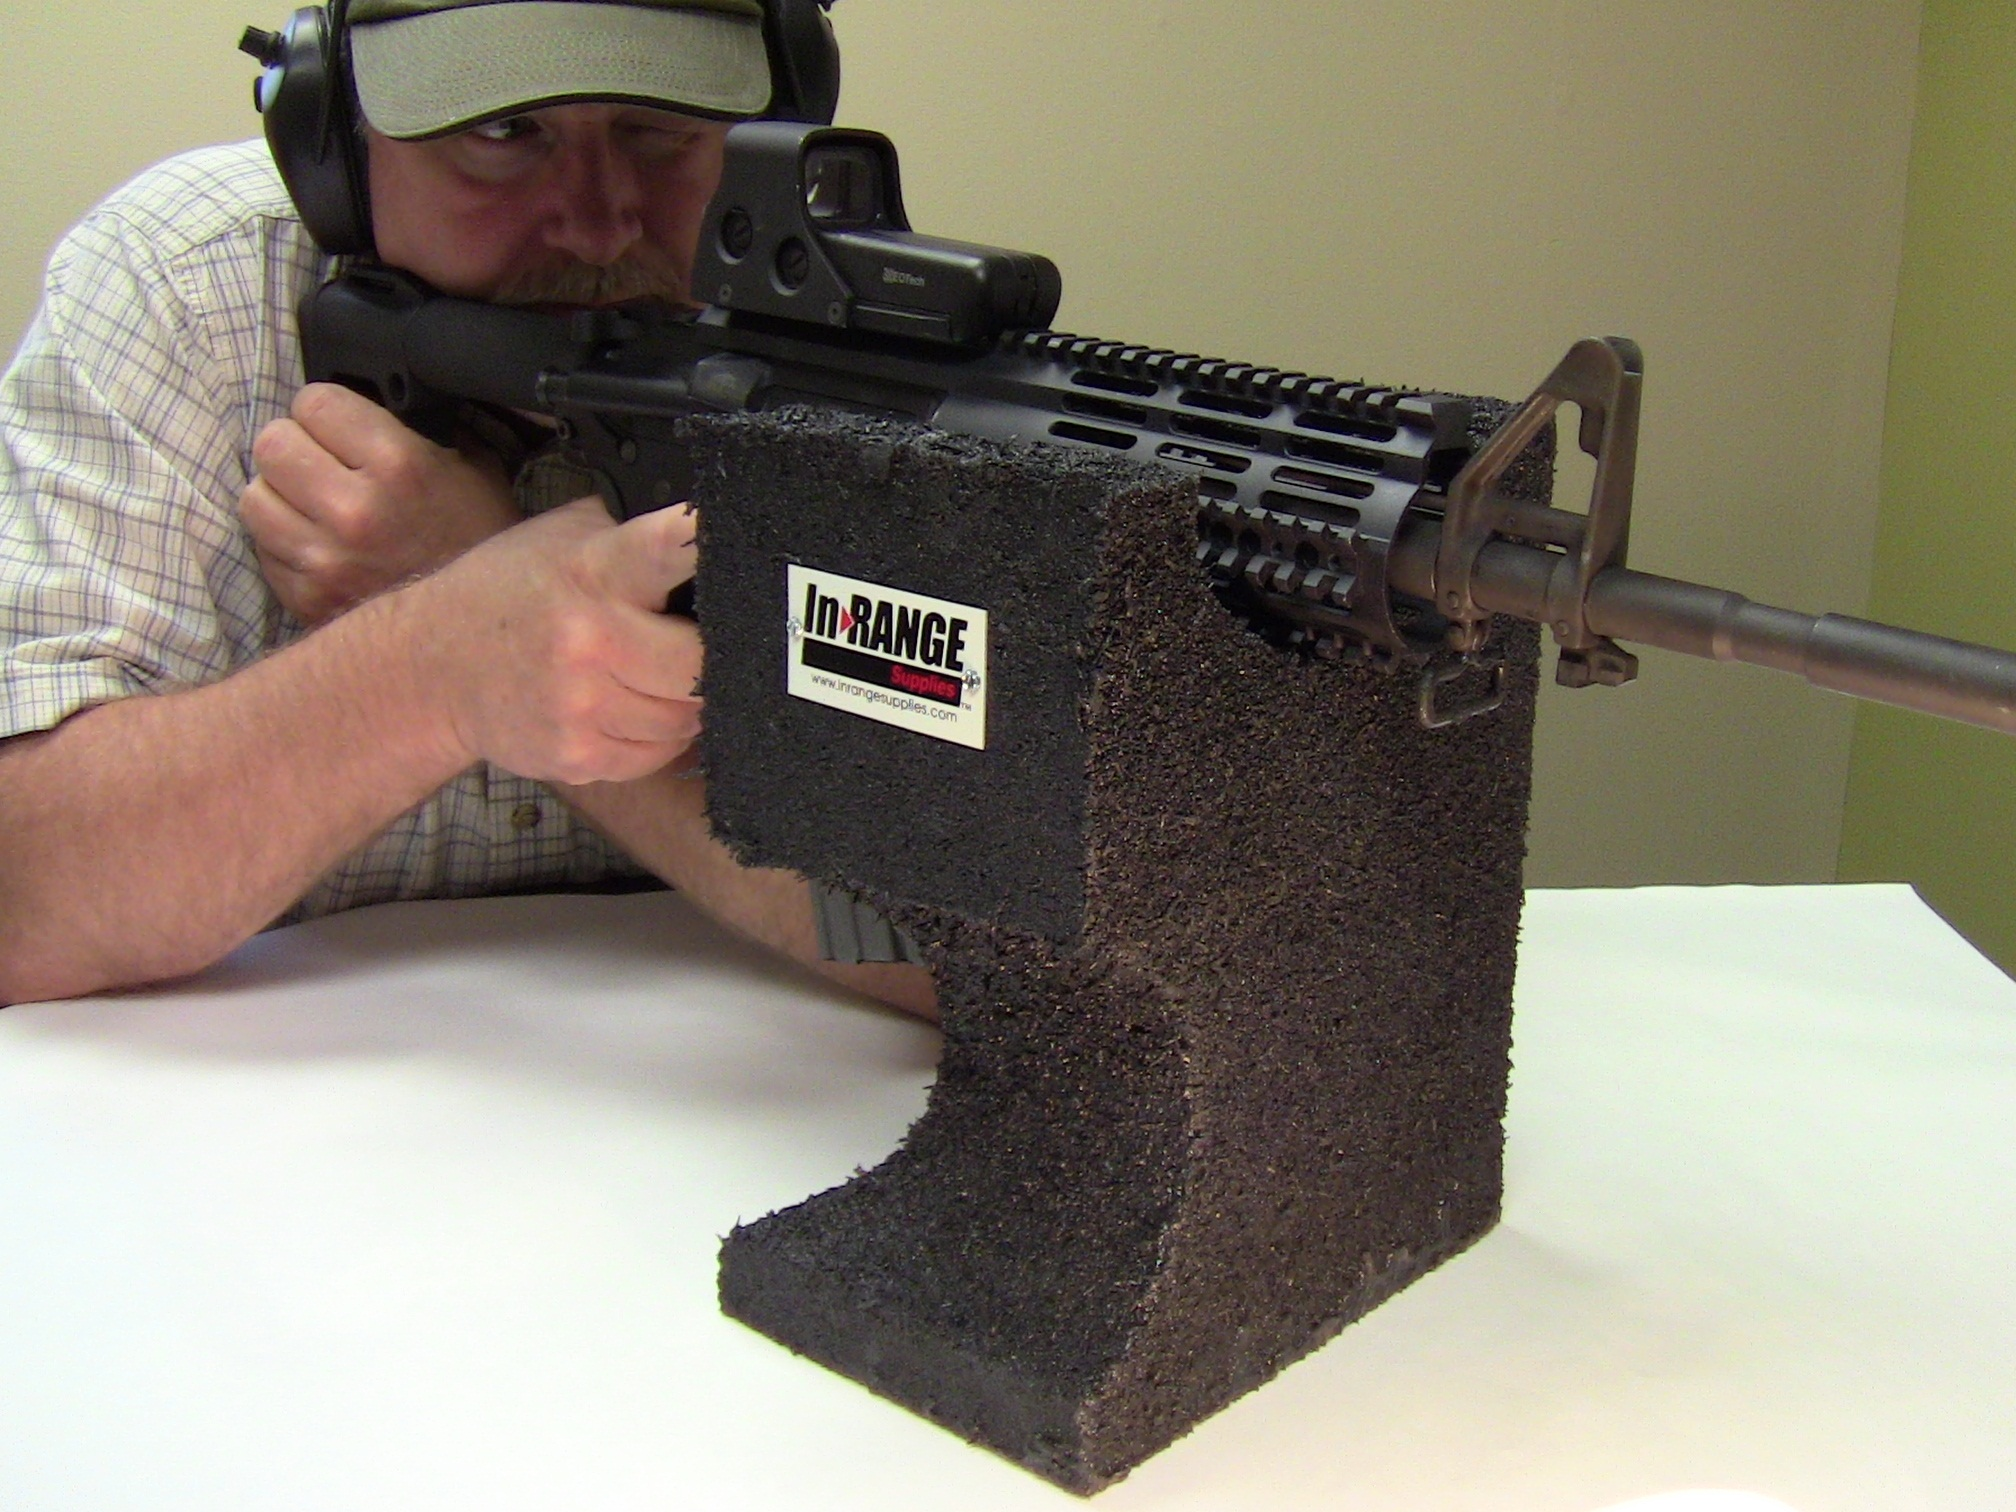 Shooting Material: In-Range Supplies Provides The Ultimate Sight-In Rifle